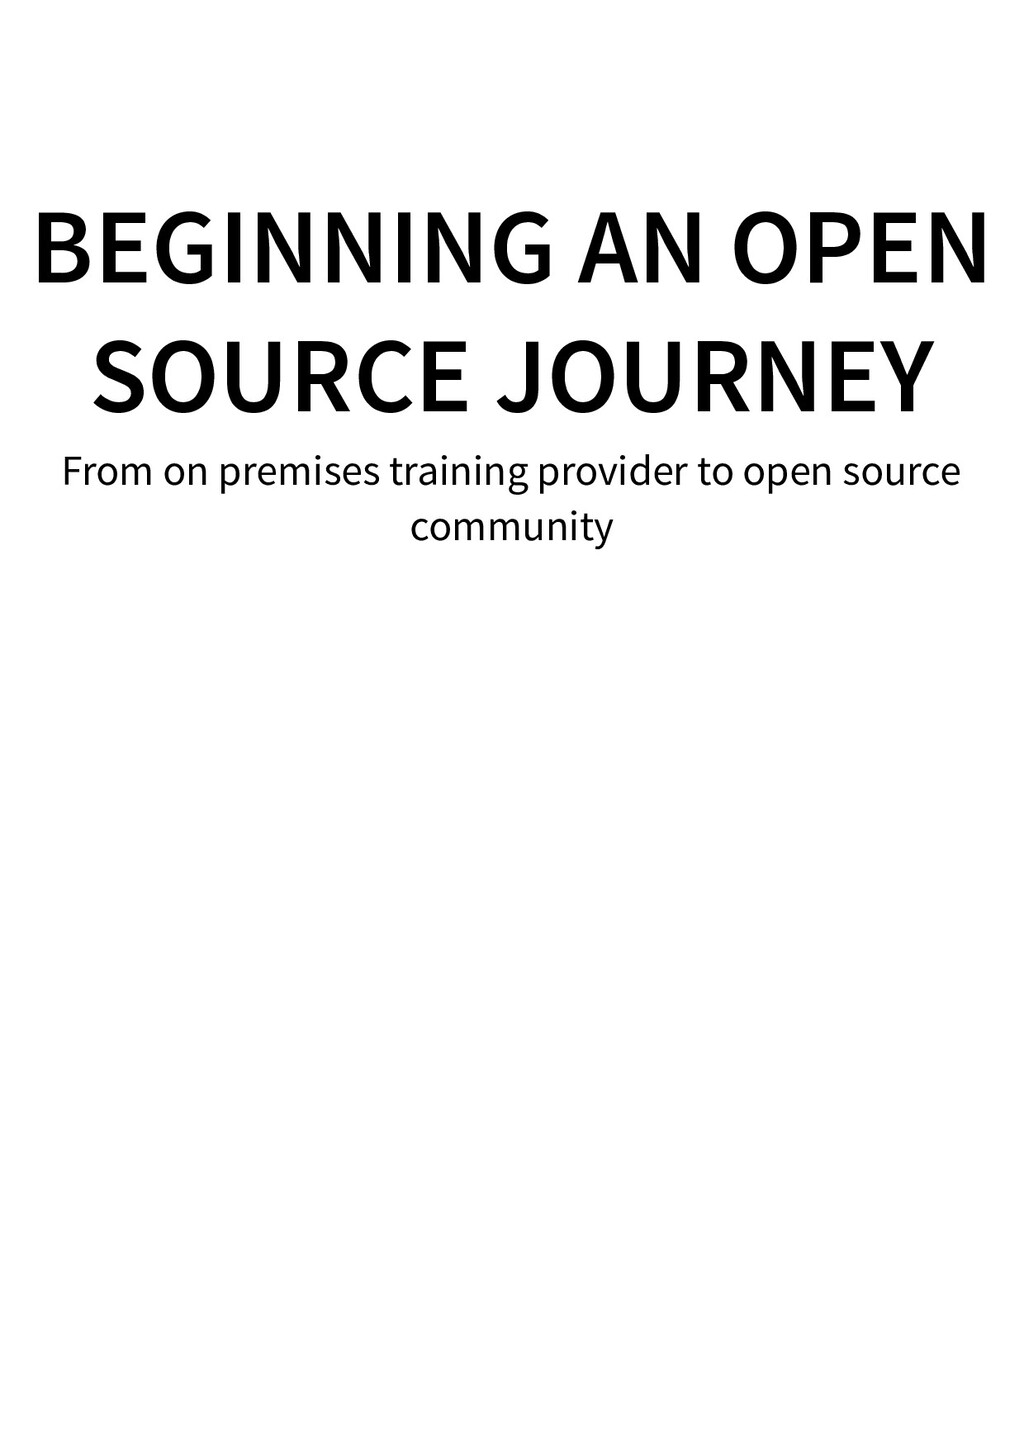 BEGINNING AN OPEN SOURCE JOURNEY From on premis...